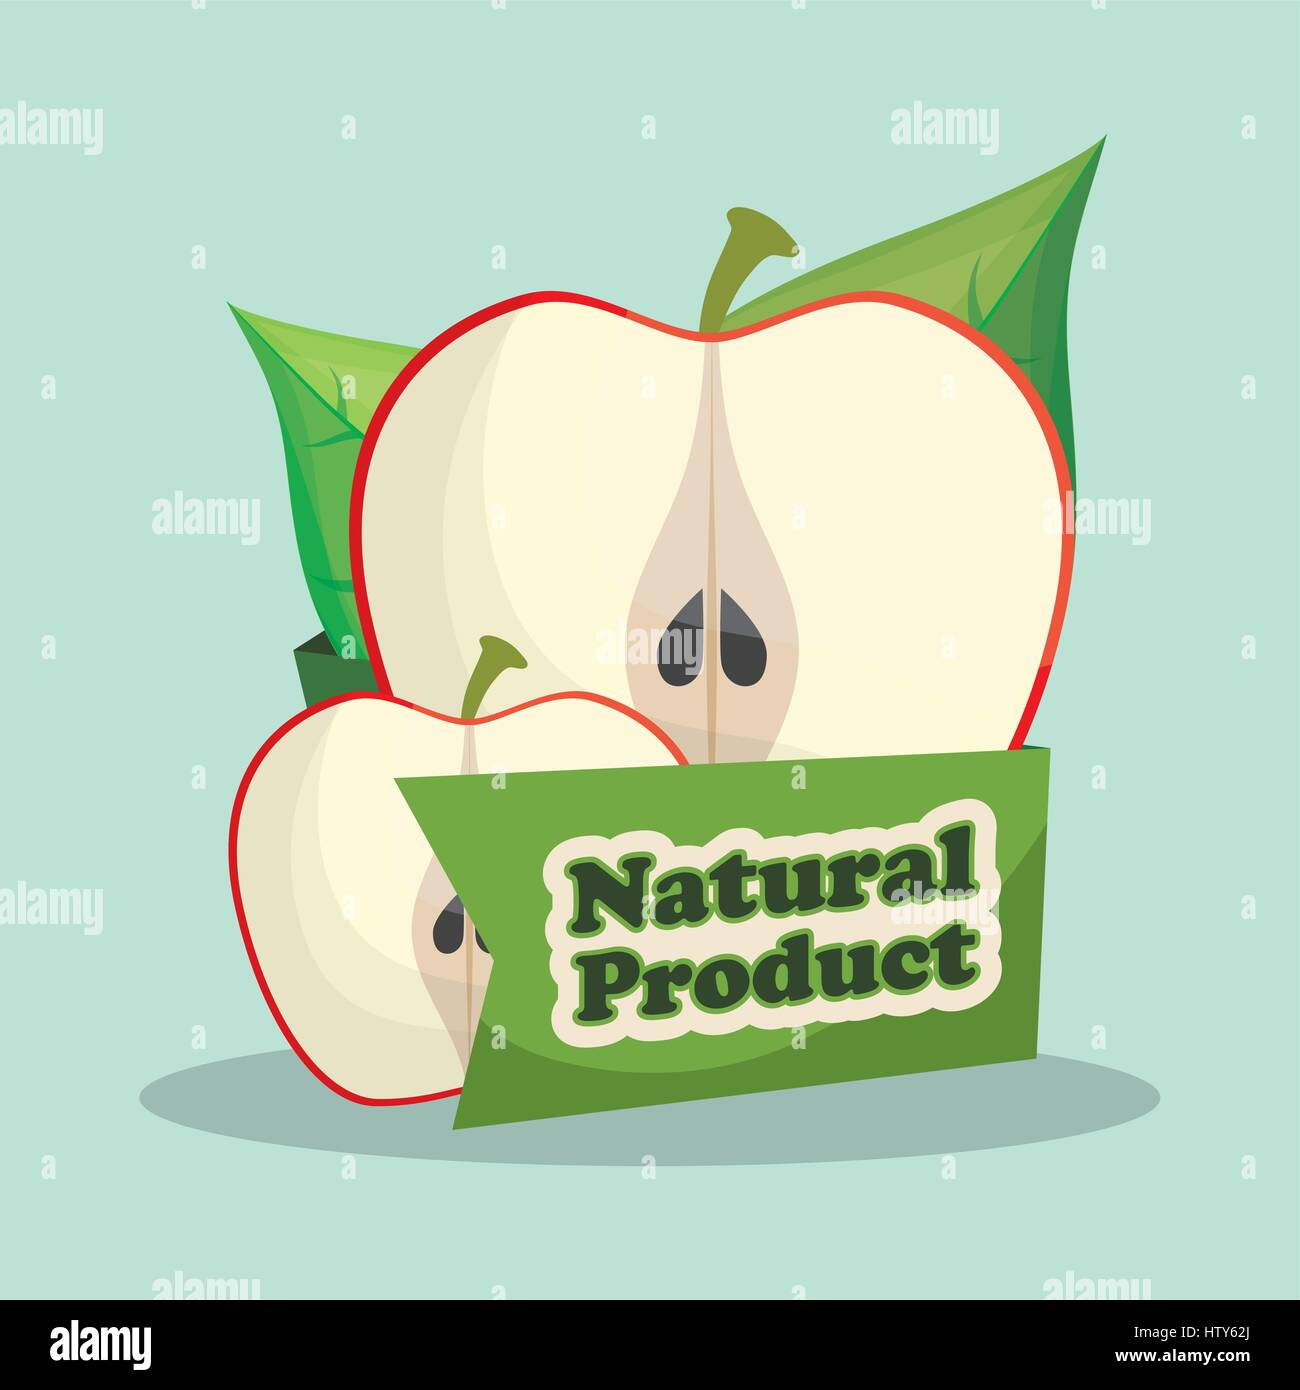 apple natural product market design - Stock Vector